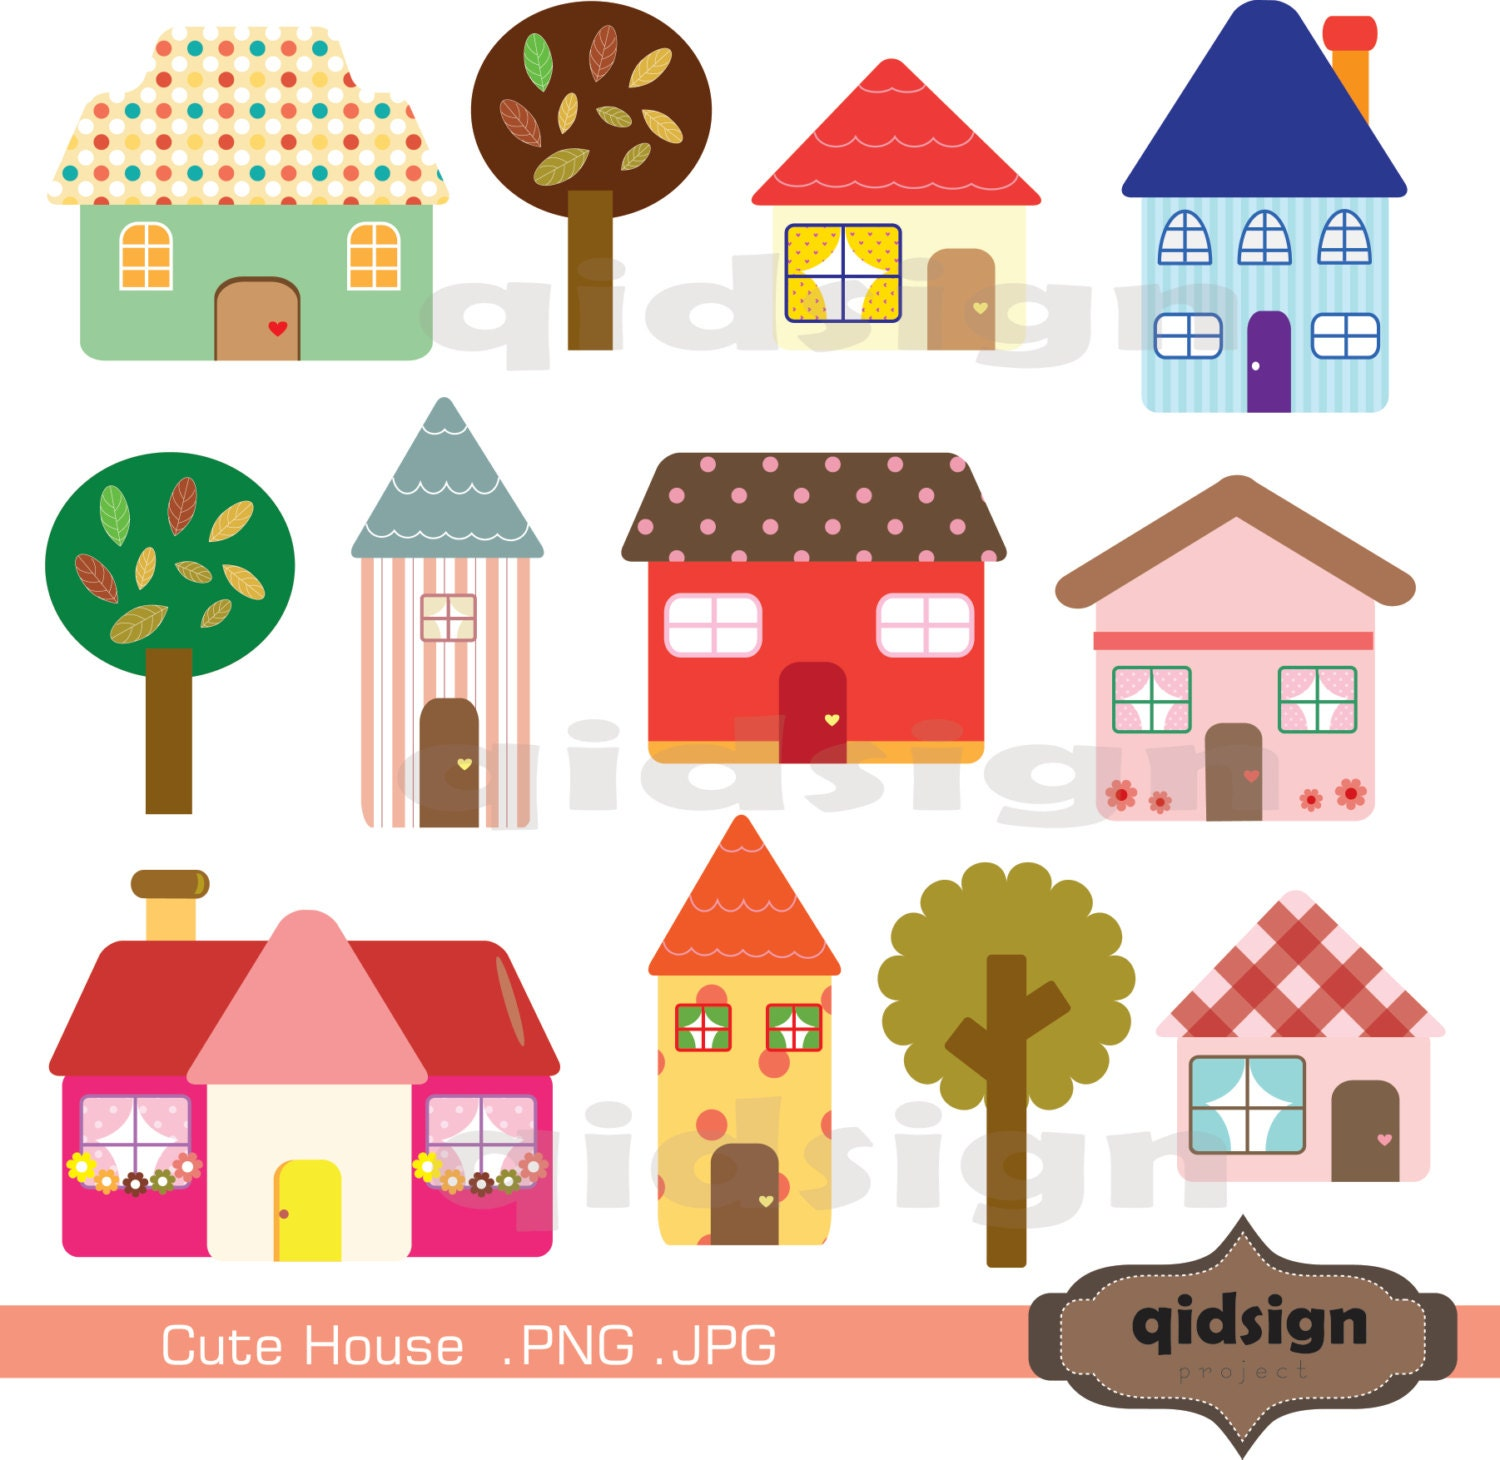 Cute House Clipart Personal and Commercial UseDigital clipart